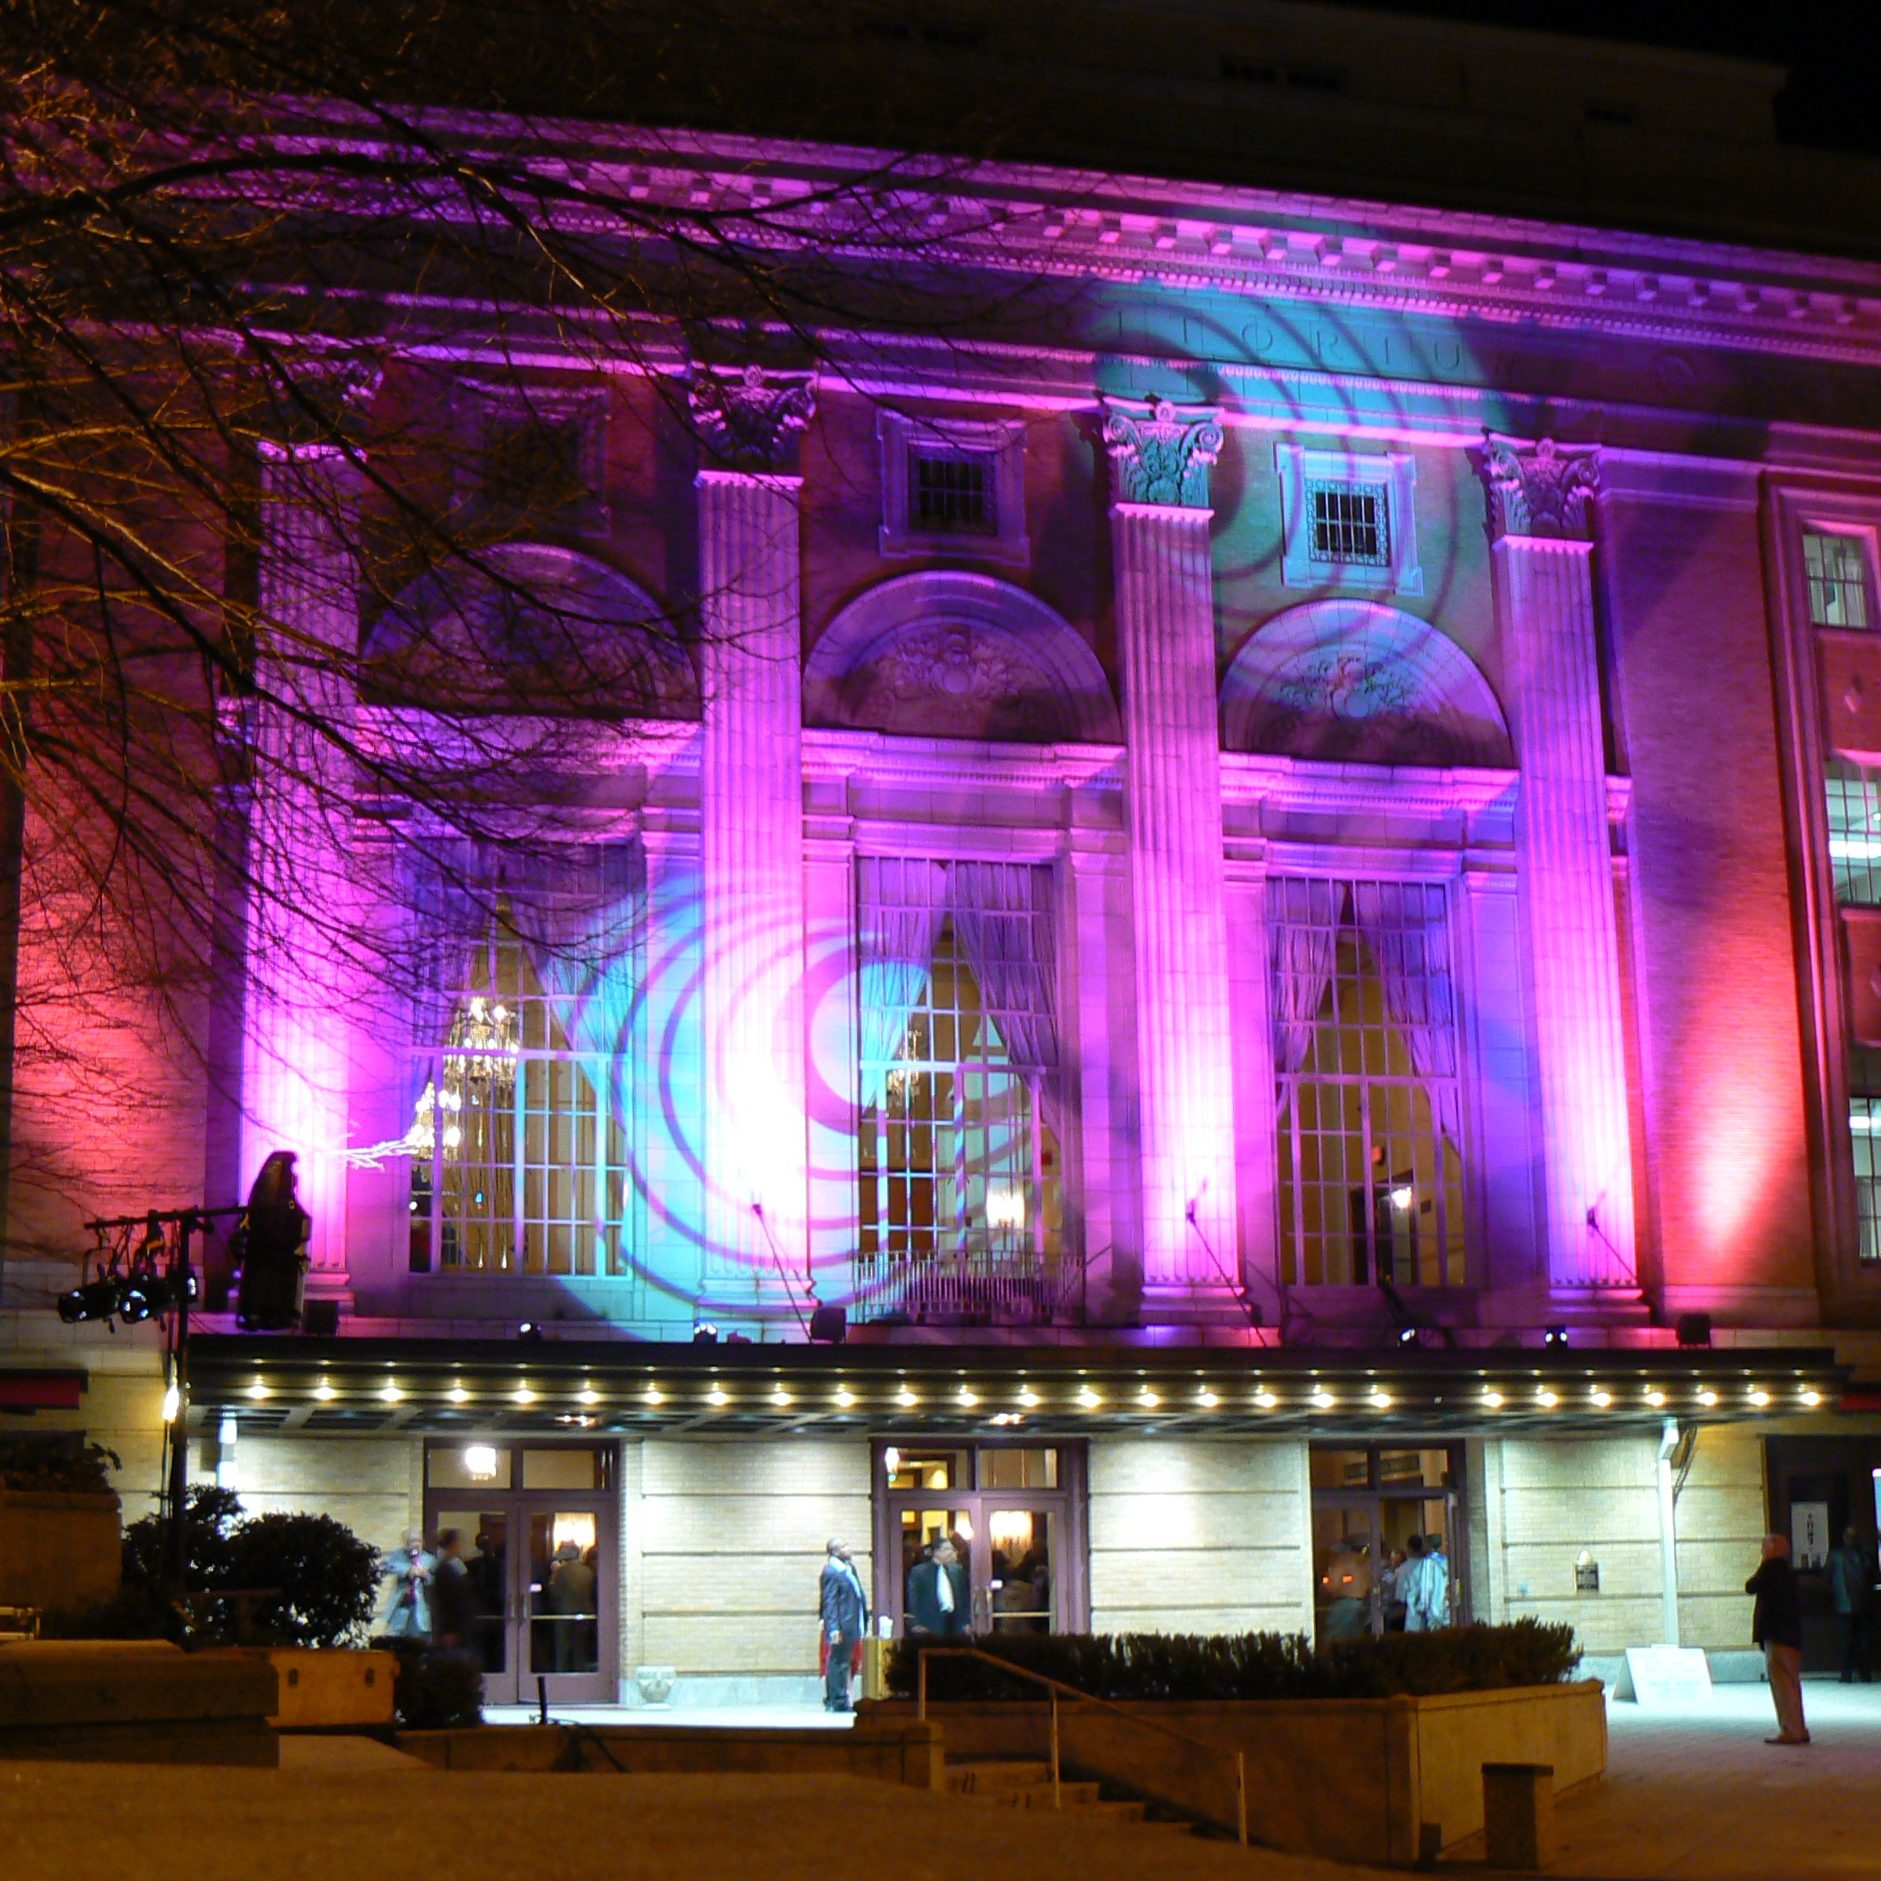 Exterior of a Theater on Event Night